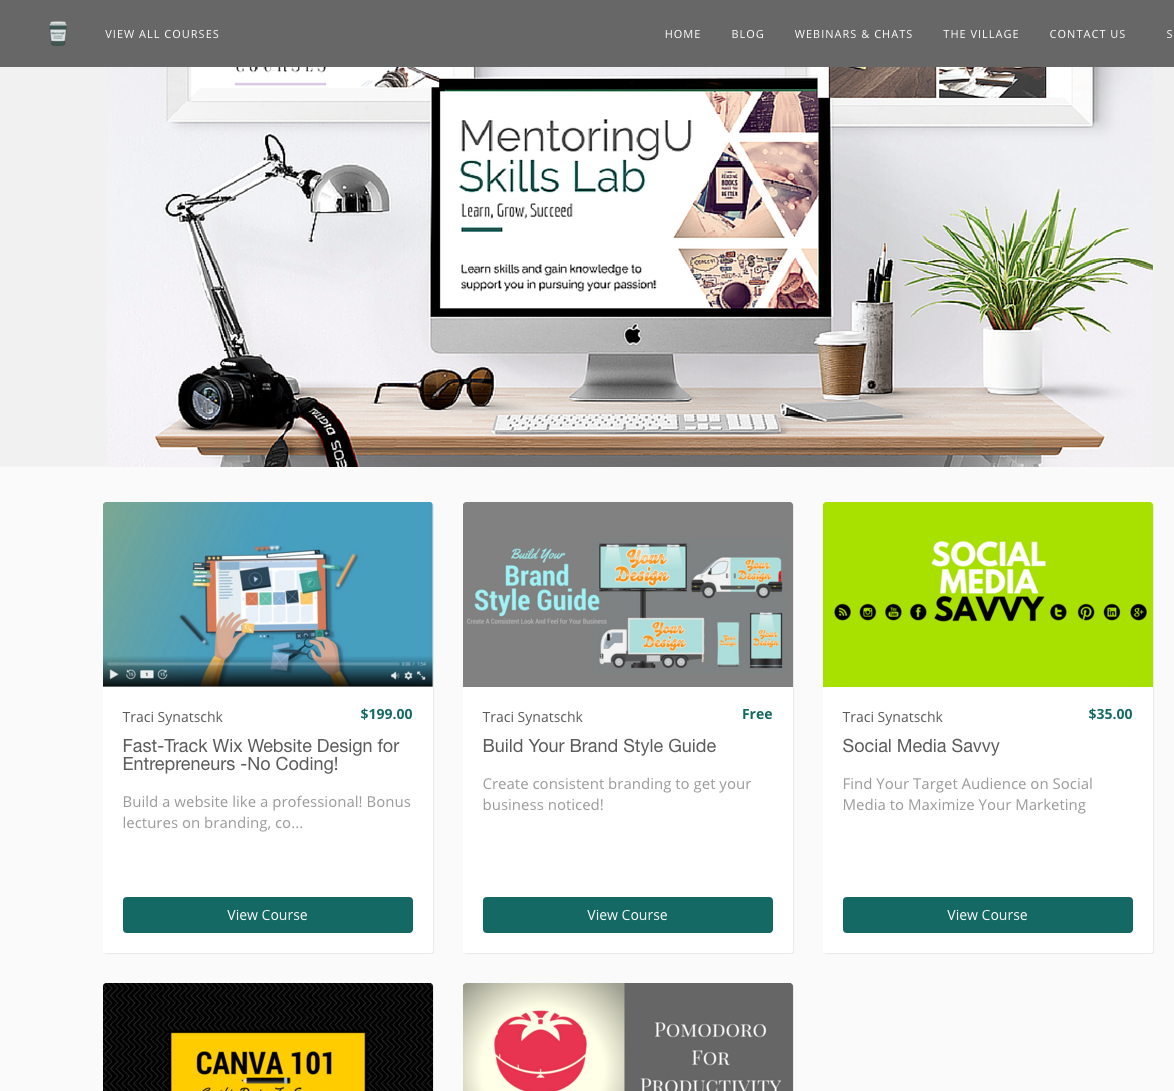 MentoringU Skills Lab offers E-Learning for Entrepreneurs